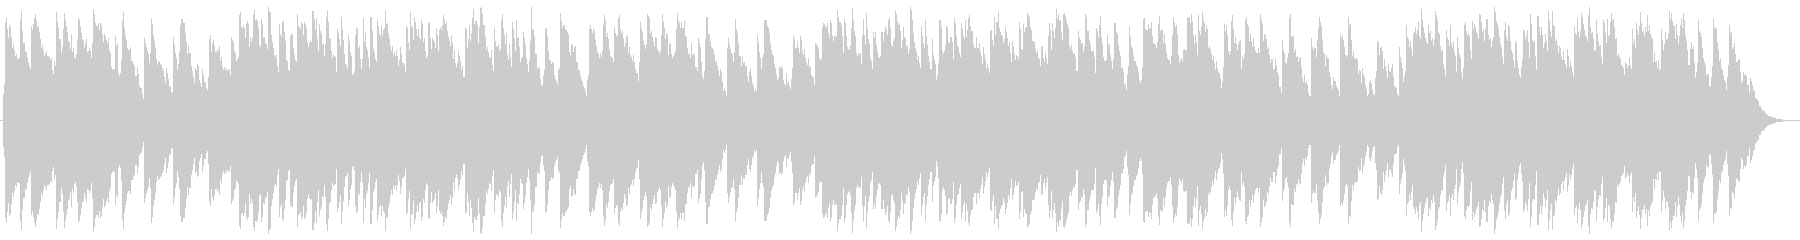 A piece of music box's unreproduced waveform